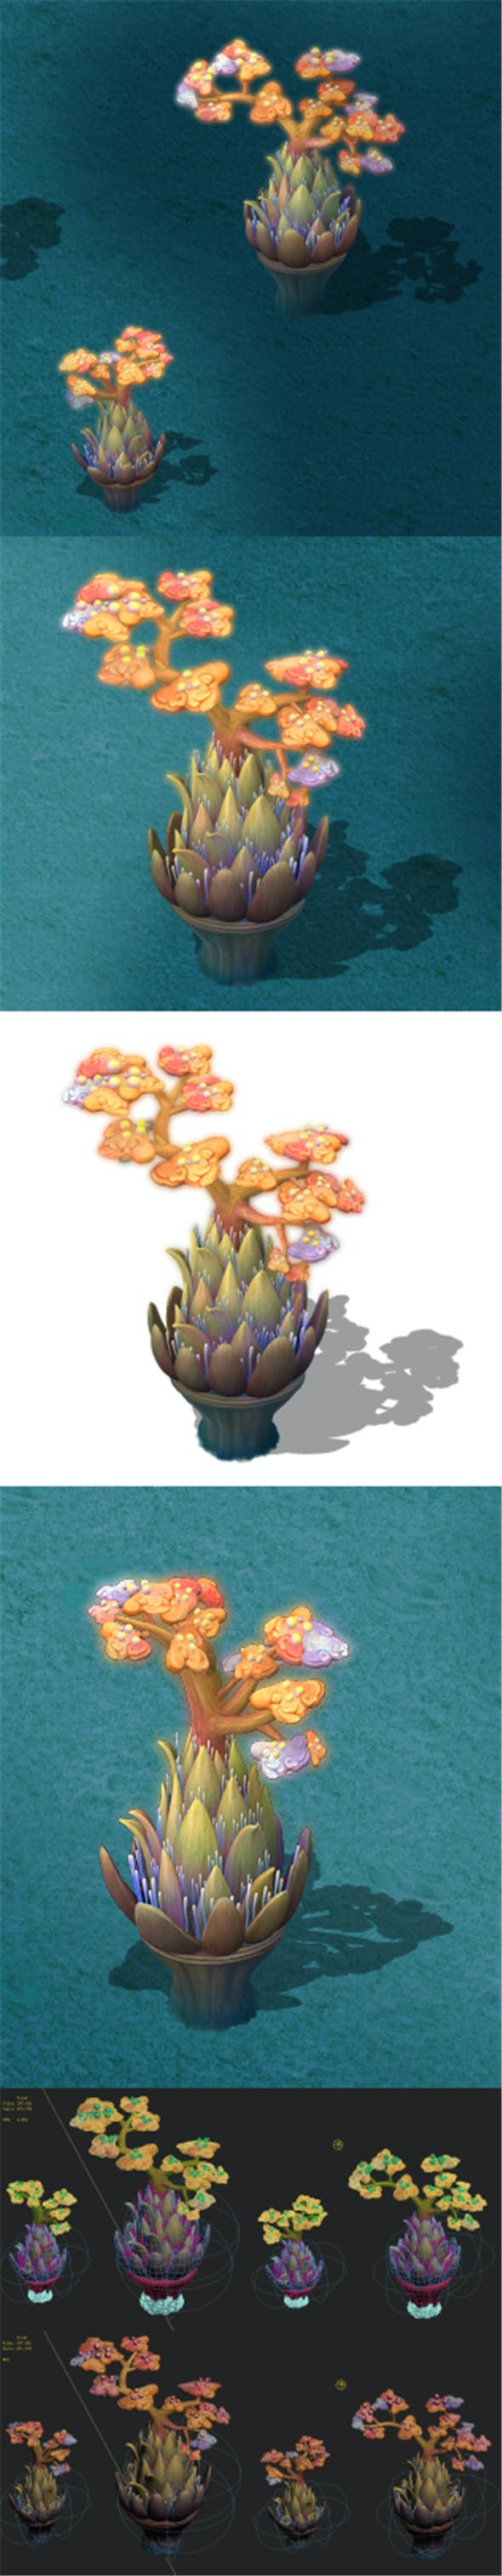 Submarine Cartoon World - Coral Salad Tree - 3DOcean Item for Sale